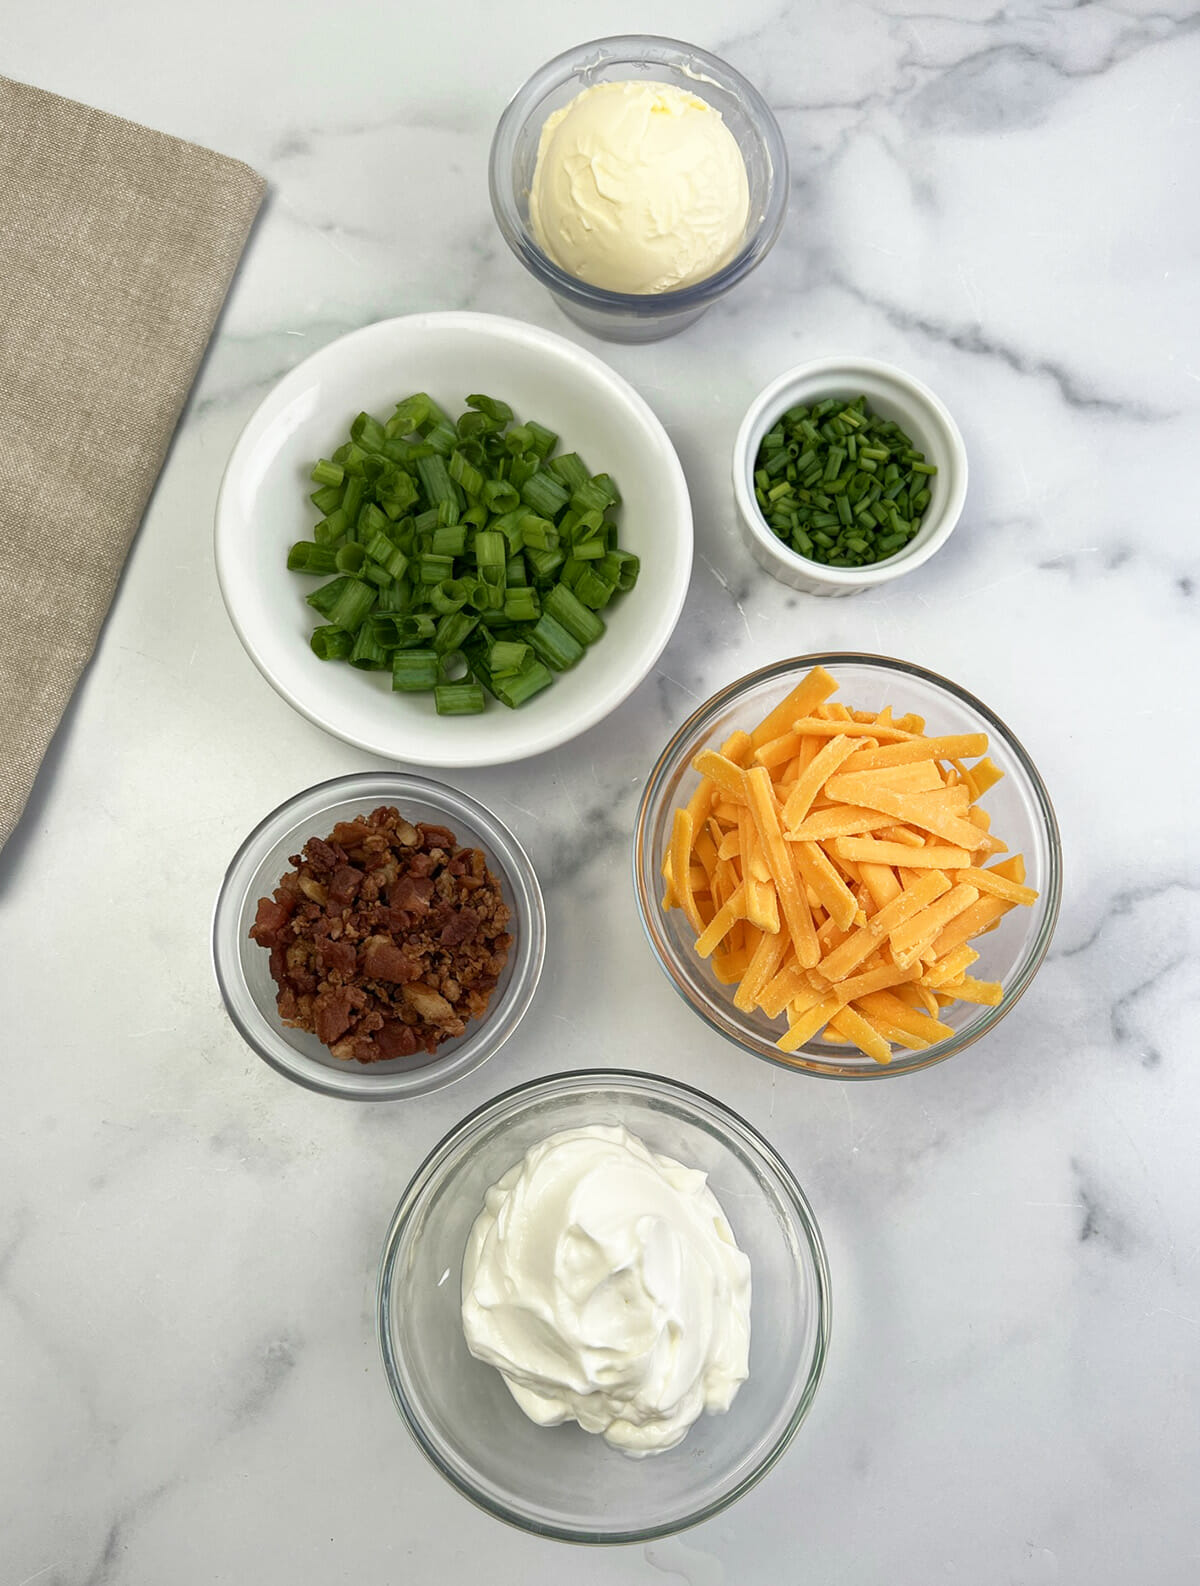 Toppings for air fryer baked potatoes